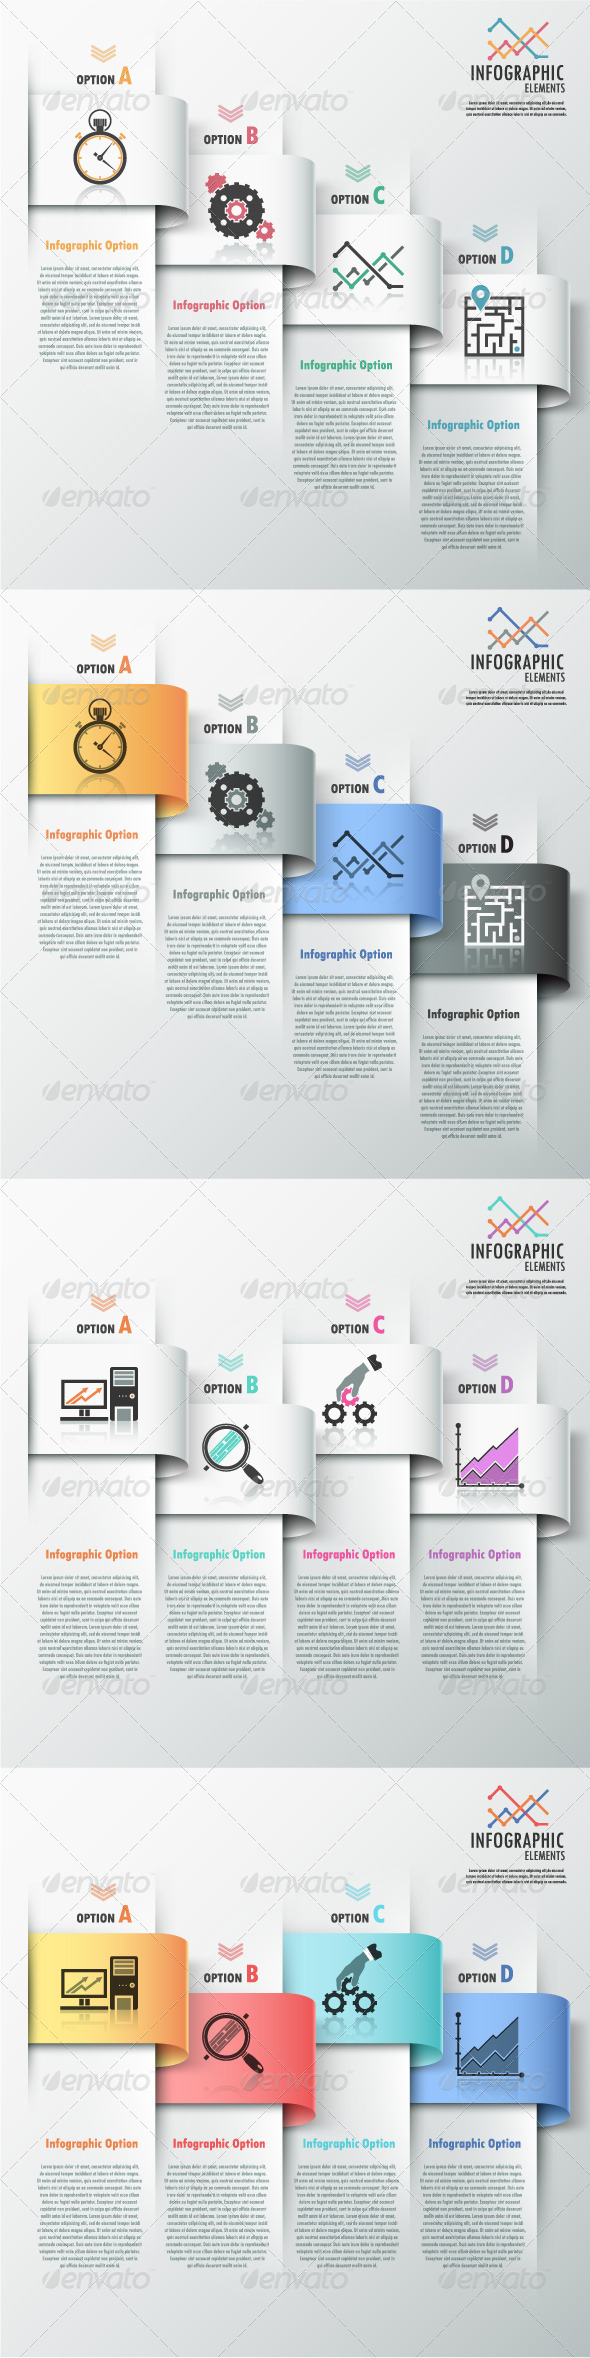 GraphicRiver Modern Infographic Options Banner 4 Versions 7668405